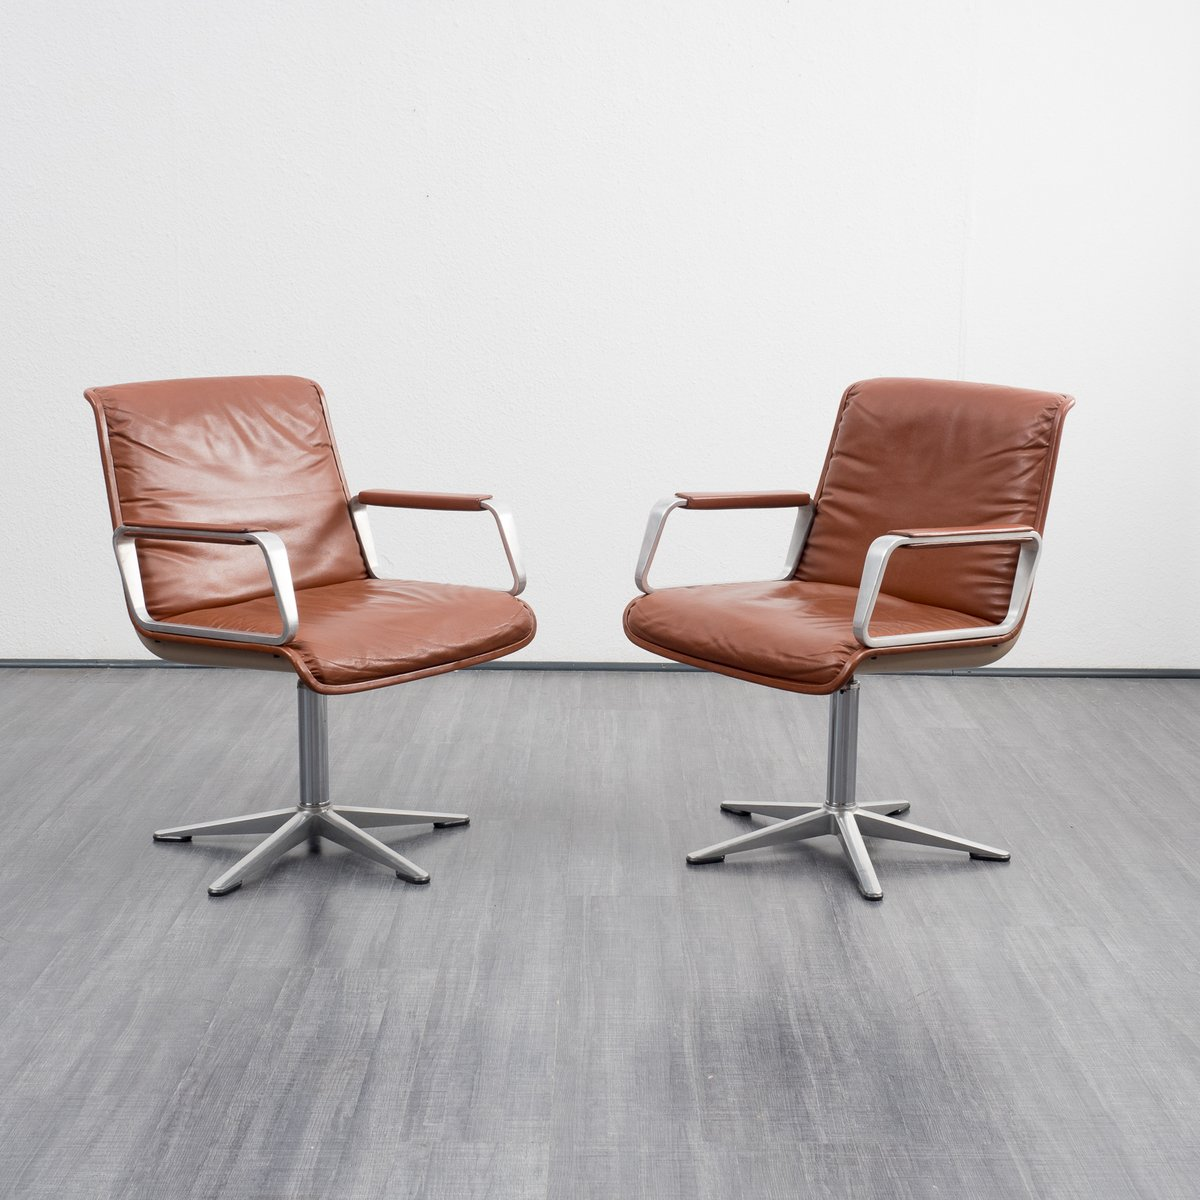 Vintage series 2000 executive chair by delta design for for Chair design 2000